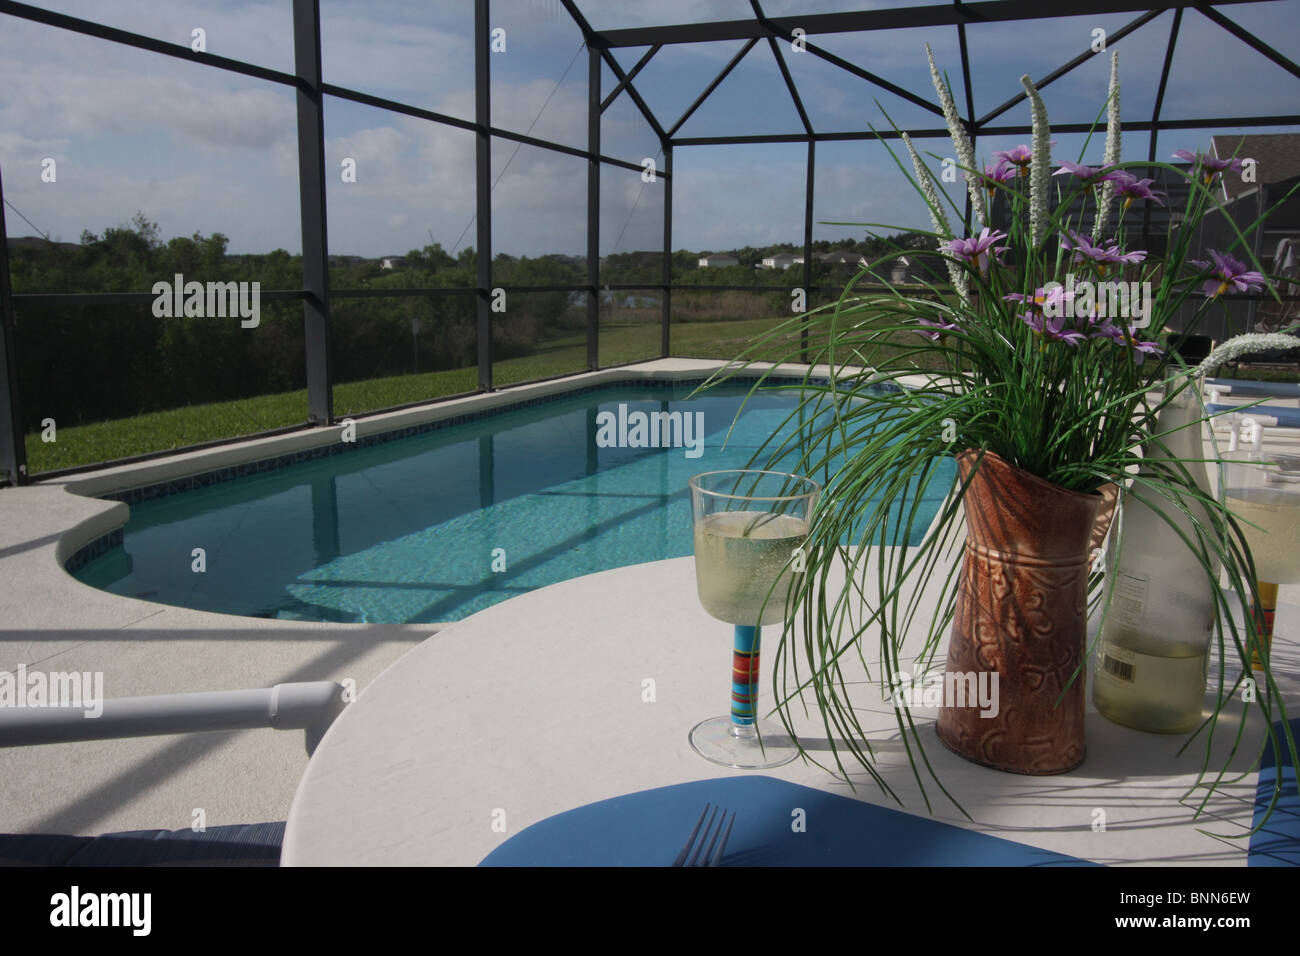 https www alamy com stock photo private swimming pool and patio area with insect mesh cover taken 30584257 html